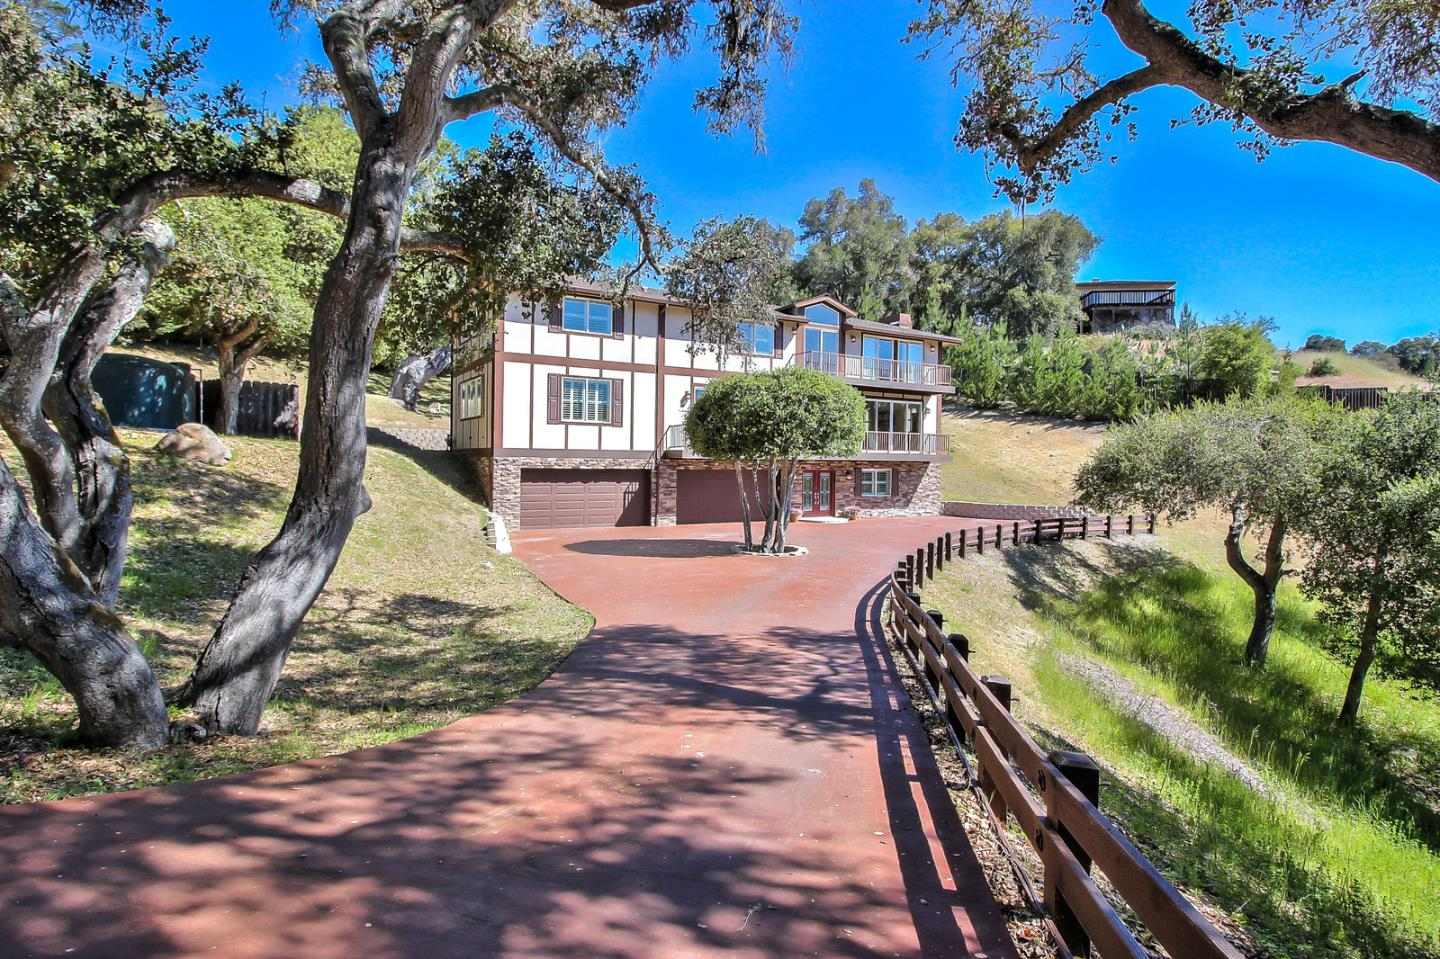 Property for sale at 245 Calle De Los Agrinemsors, Carmel Valley,  California 93924